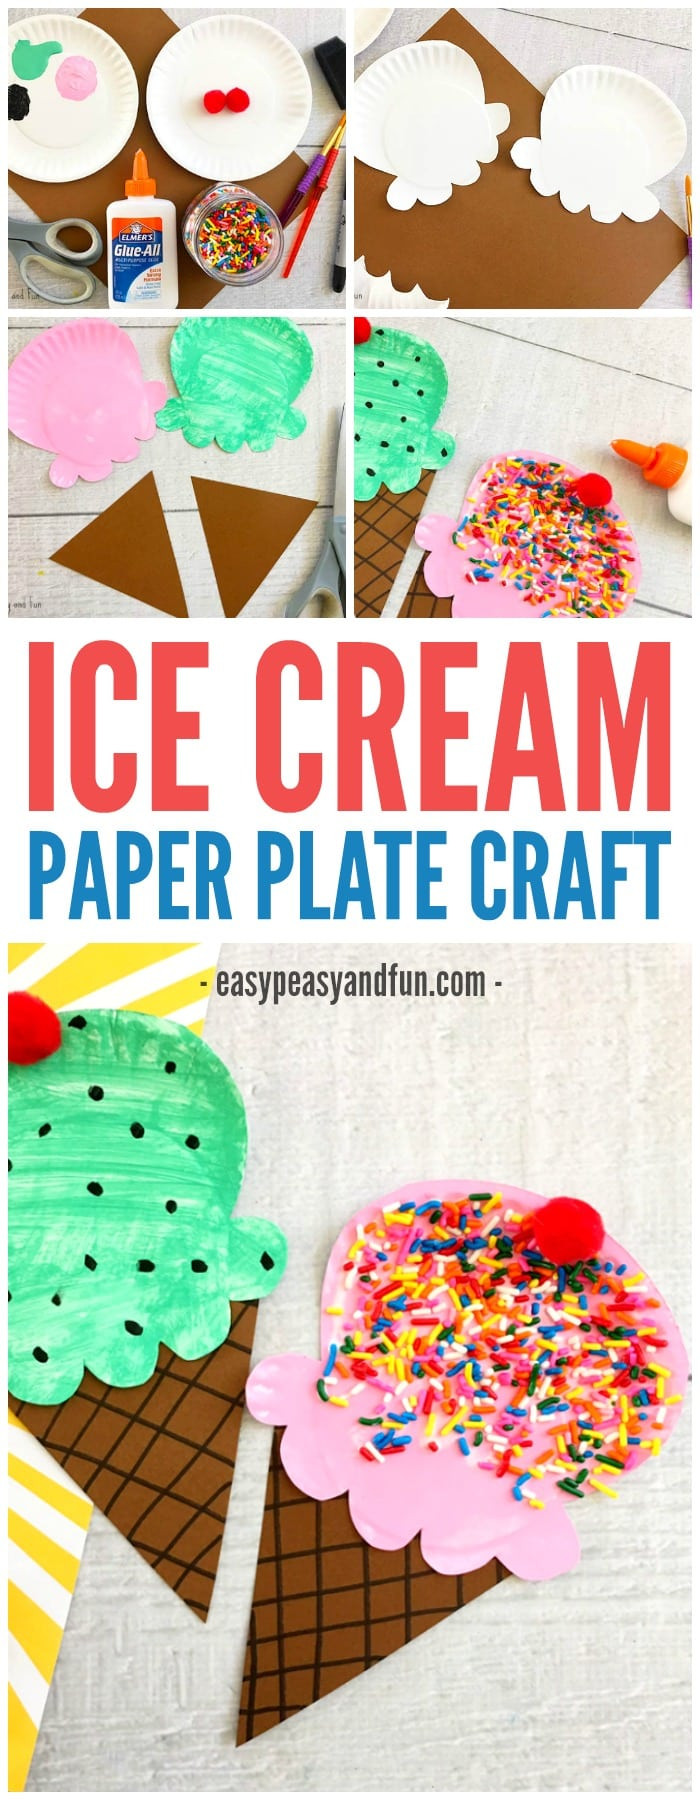 Best ideas about Fun Crafts For Preschoolers . Save or Pin Paper Plate Ice Cream Craft Summer Craft Idea for Kids Now.